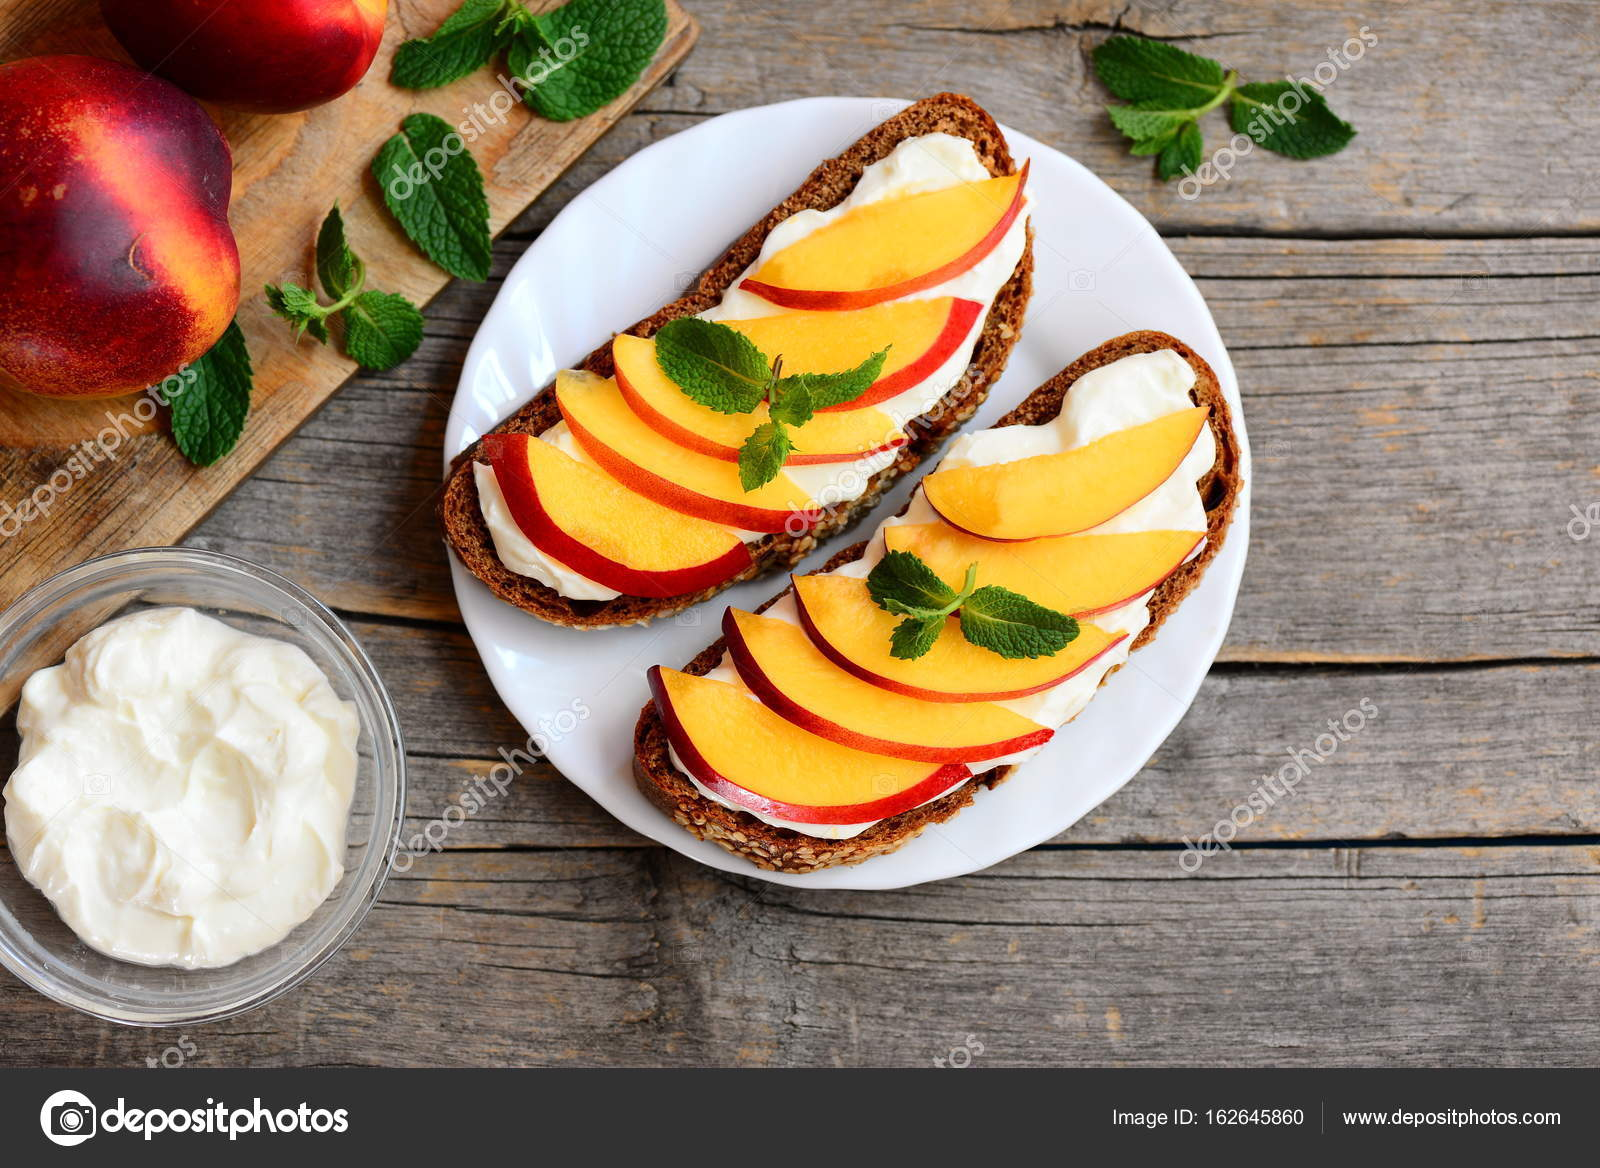 Easy Nectarine And Cream Cheese Sandwiches Rye Bread Open